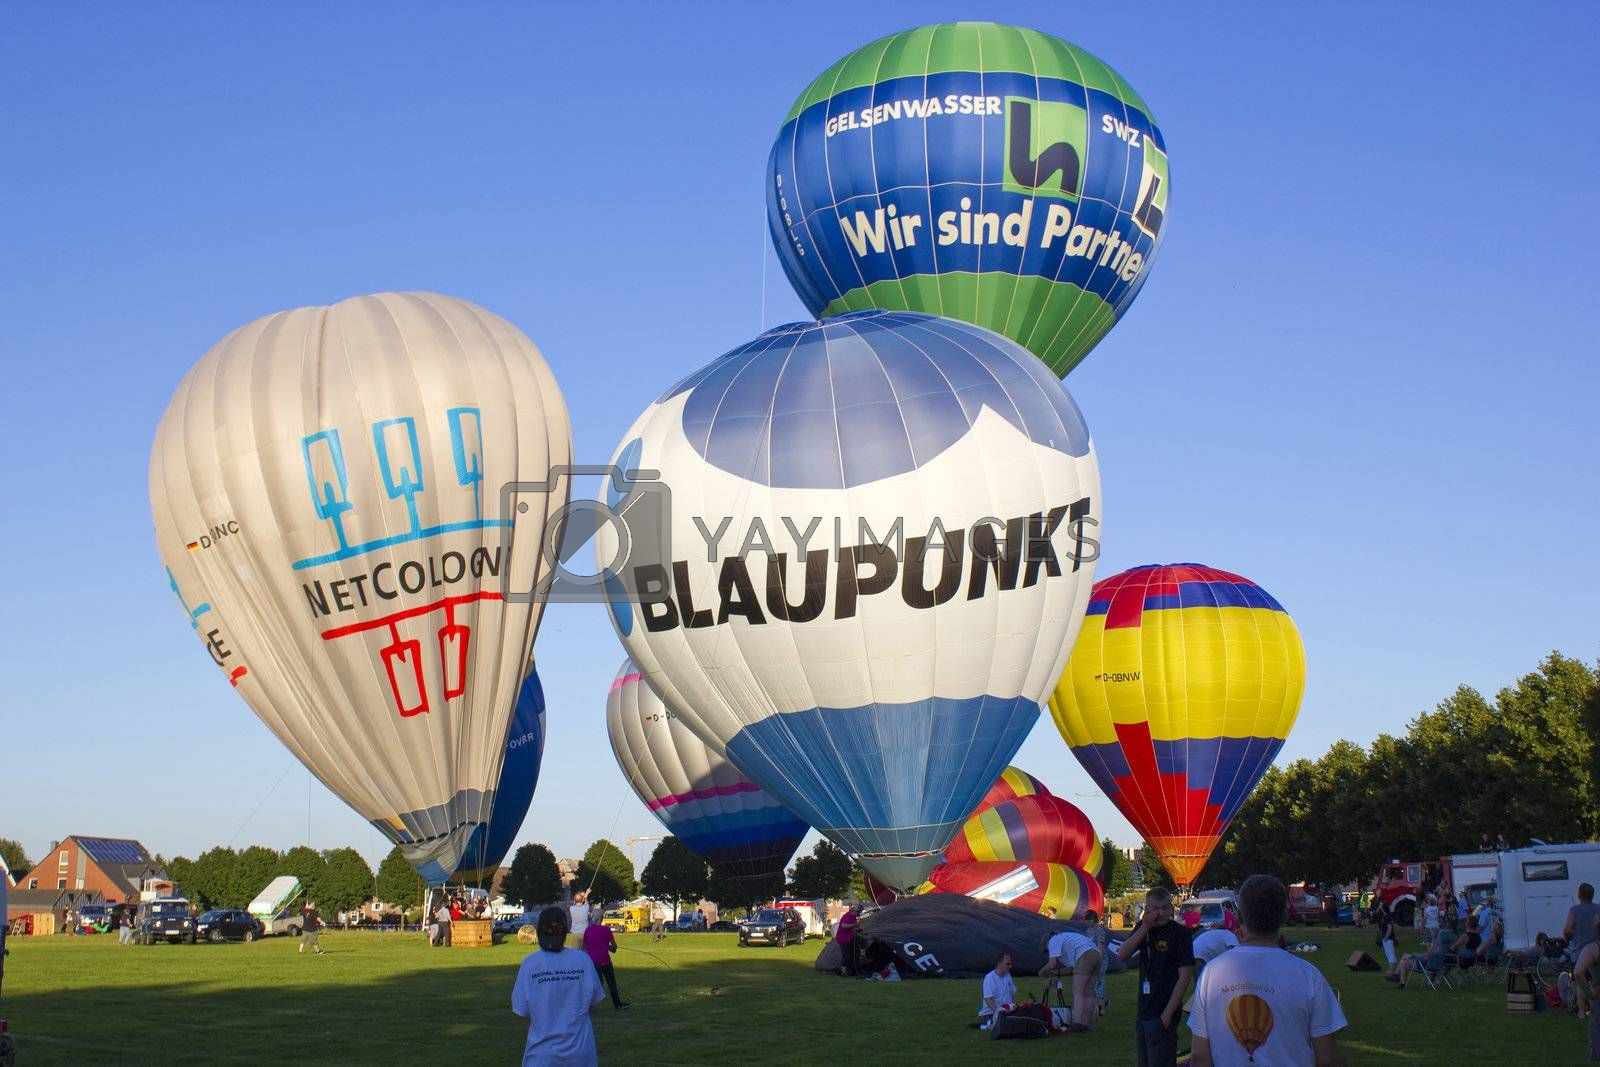 Hot air balloons festival, August 2012, Kevelaer, Germany